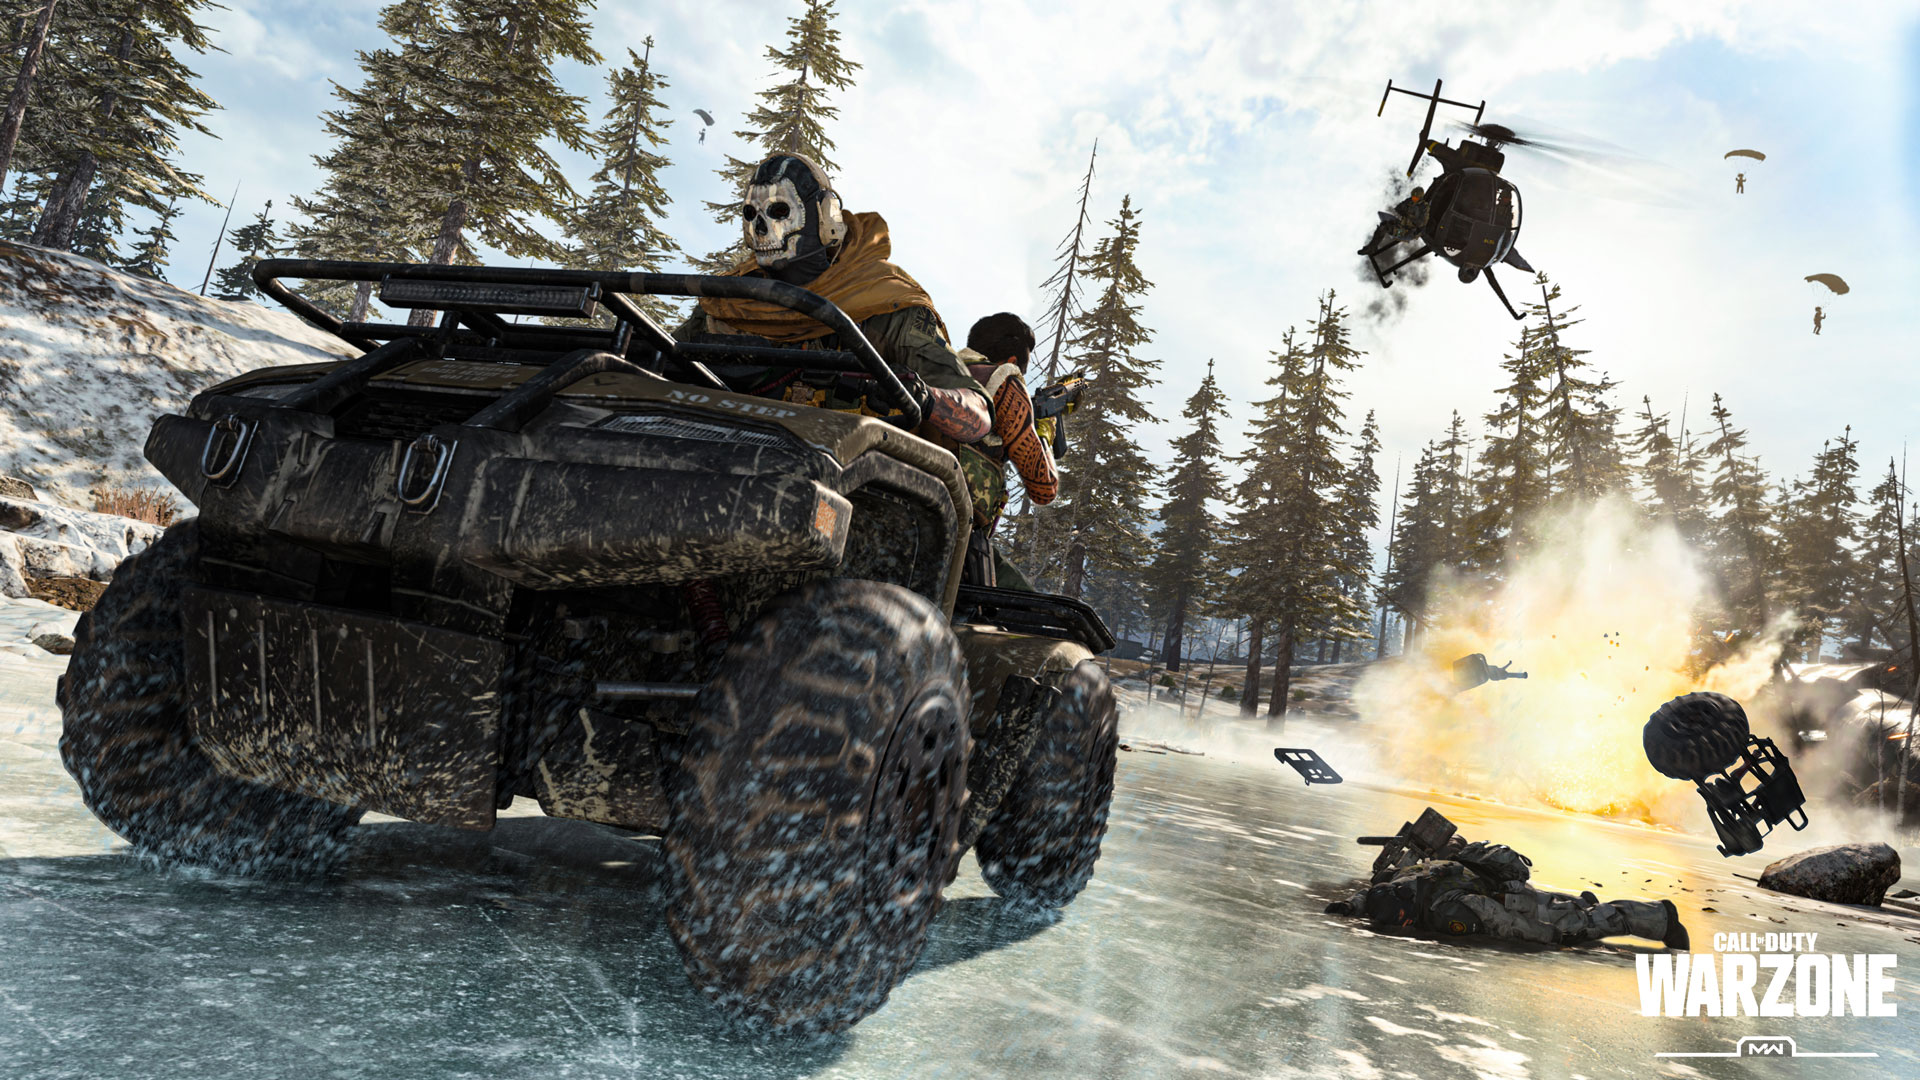 "A soldier wearing a skull mask drives an ATV over a frozen lake in the woods. A heavily tattooed soldier sits behind him, firing at a helicopter in pursuit. Two parashooting soldiers are silhouetted against the sky. There is a large explosion and a soldier's body laying on the ice. A logo reads ""Call of Duty Warzone, MW"""